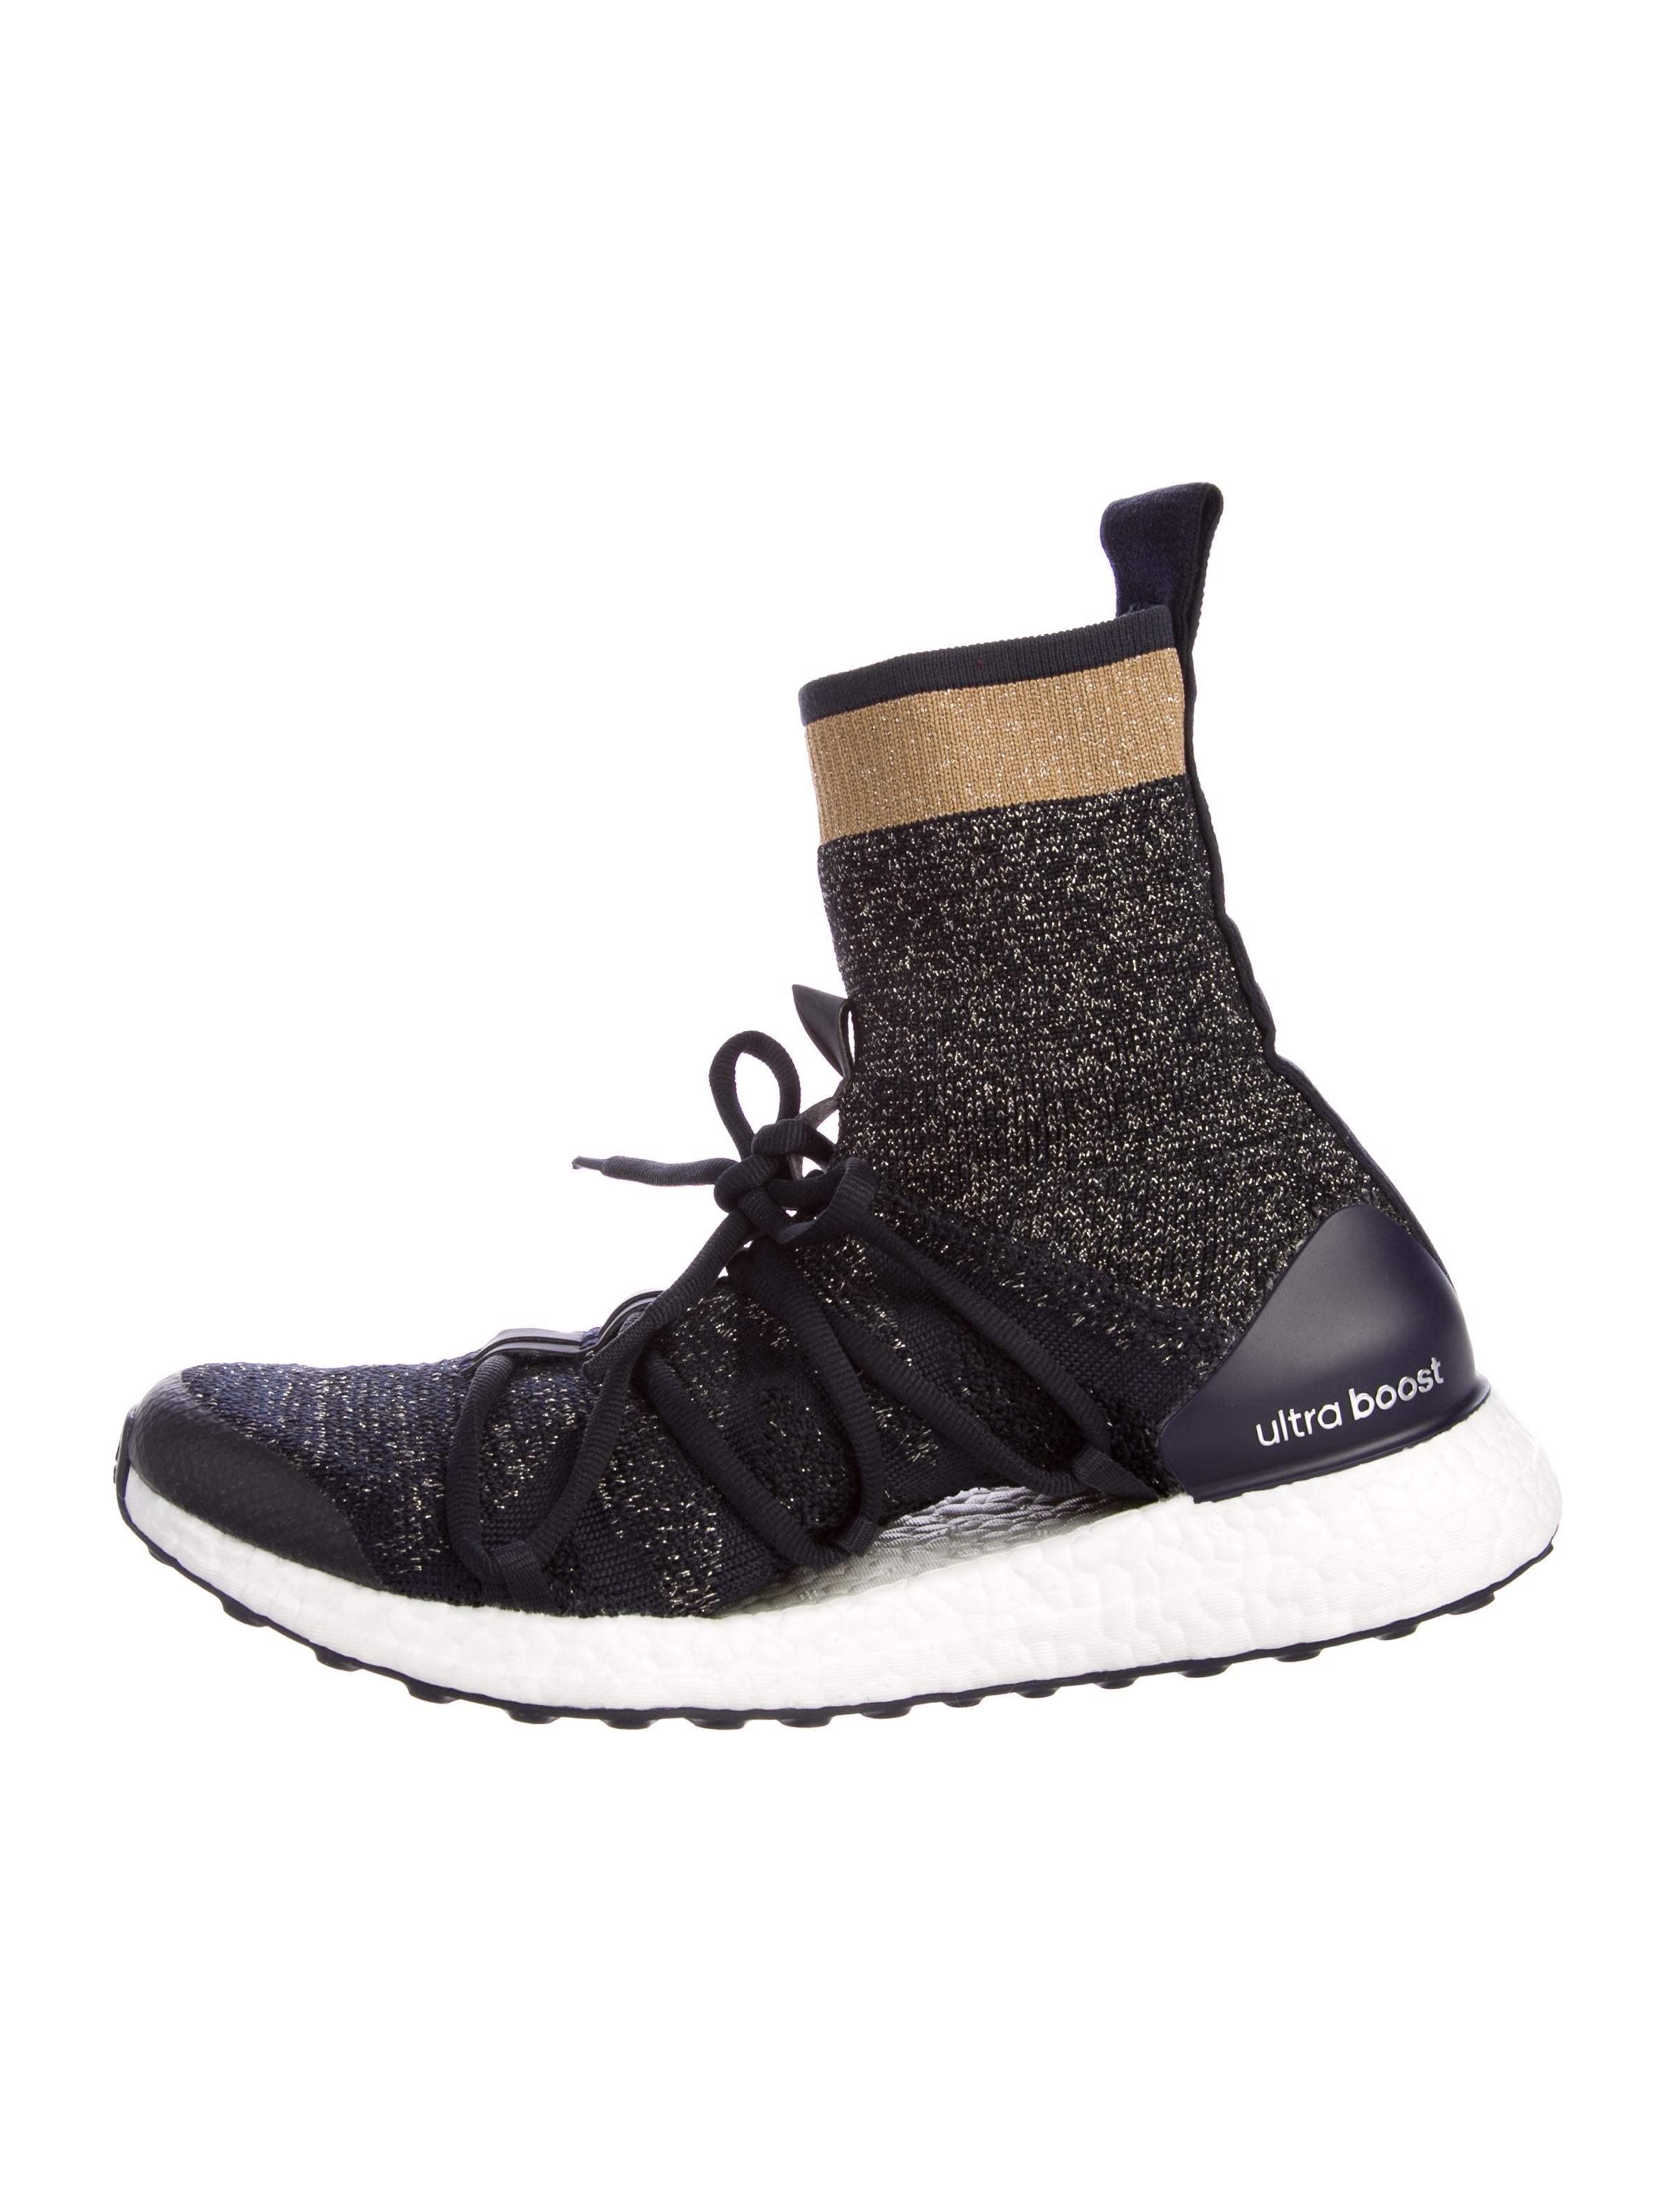 Bottega Veneta Black UltraBOOST x Mid Sneakers